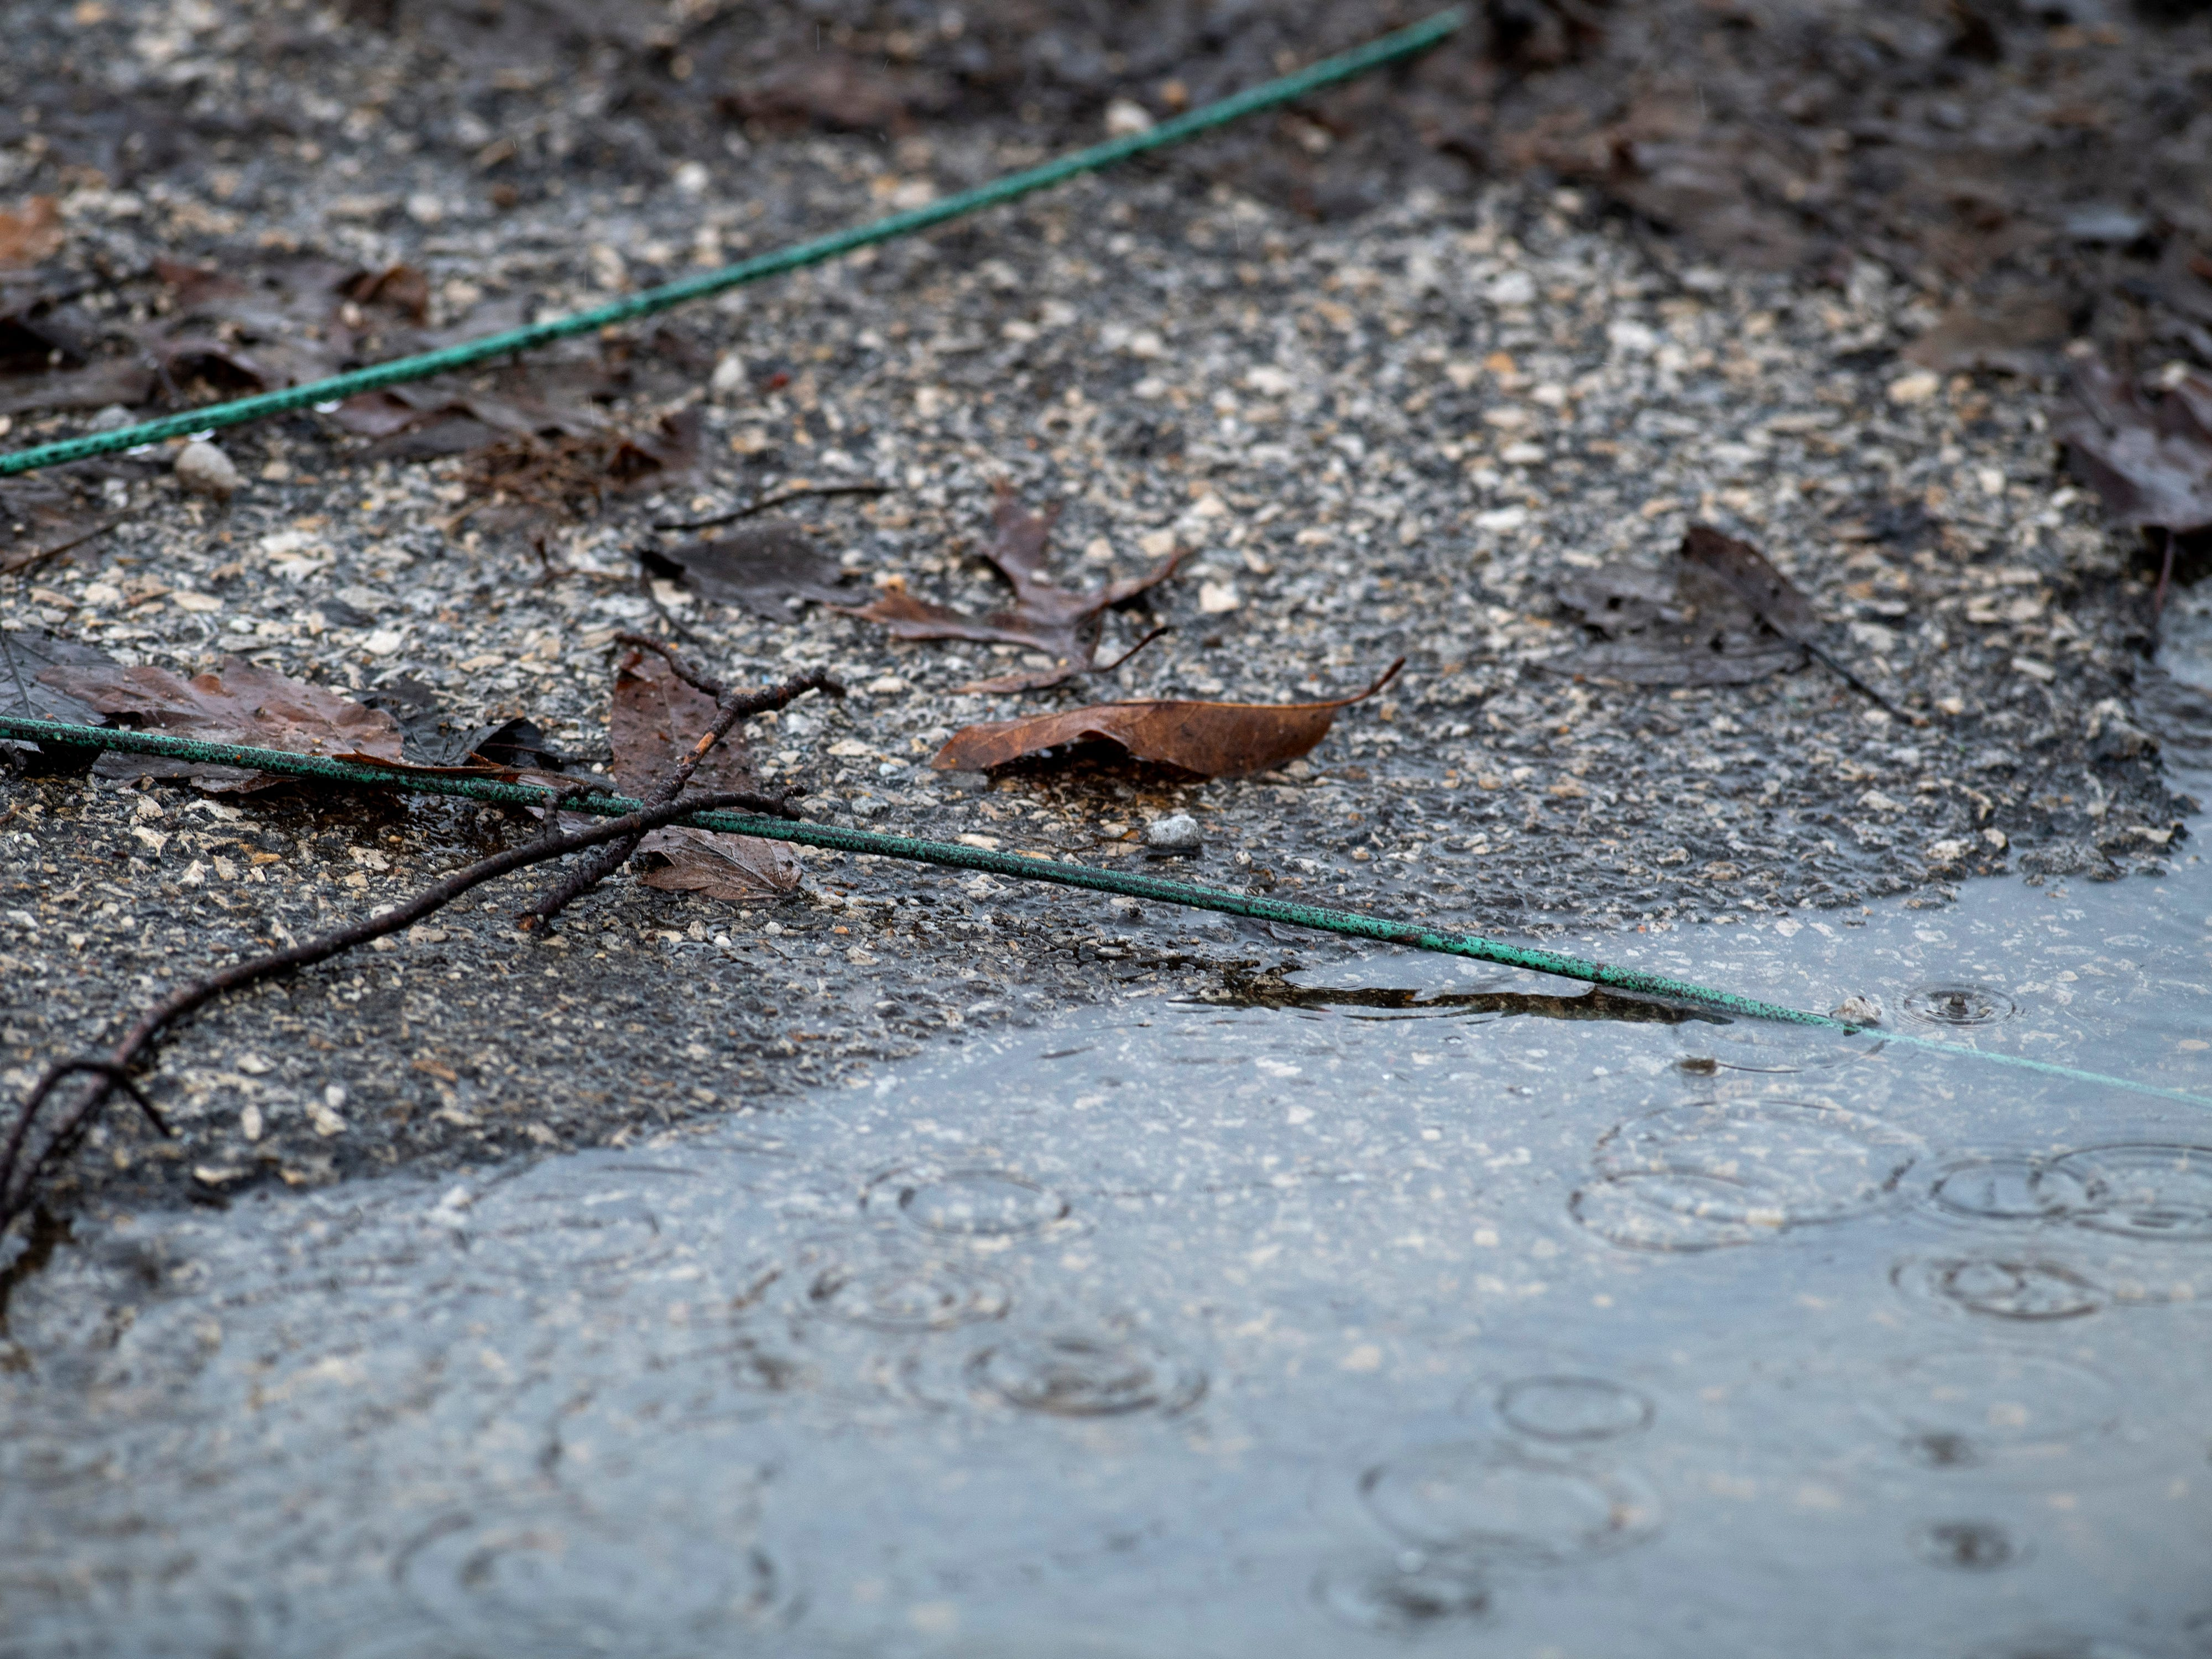 Downed live power lines rest in a puddle in Oakland City, Ind., Thursday afternoon. An earlier storm created quite a bit of damage to homes, power lines and trees on the west side of the town.